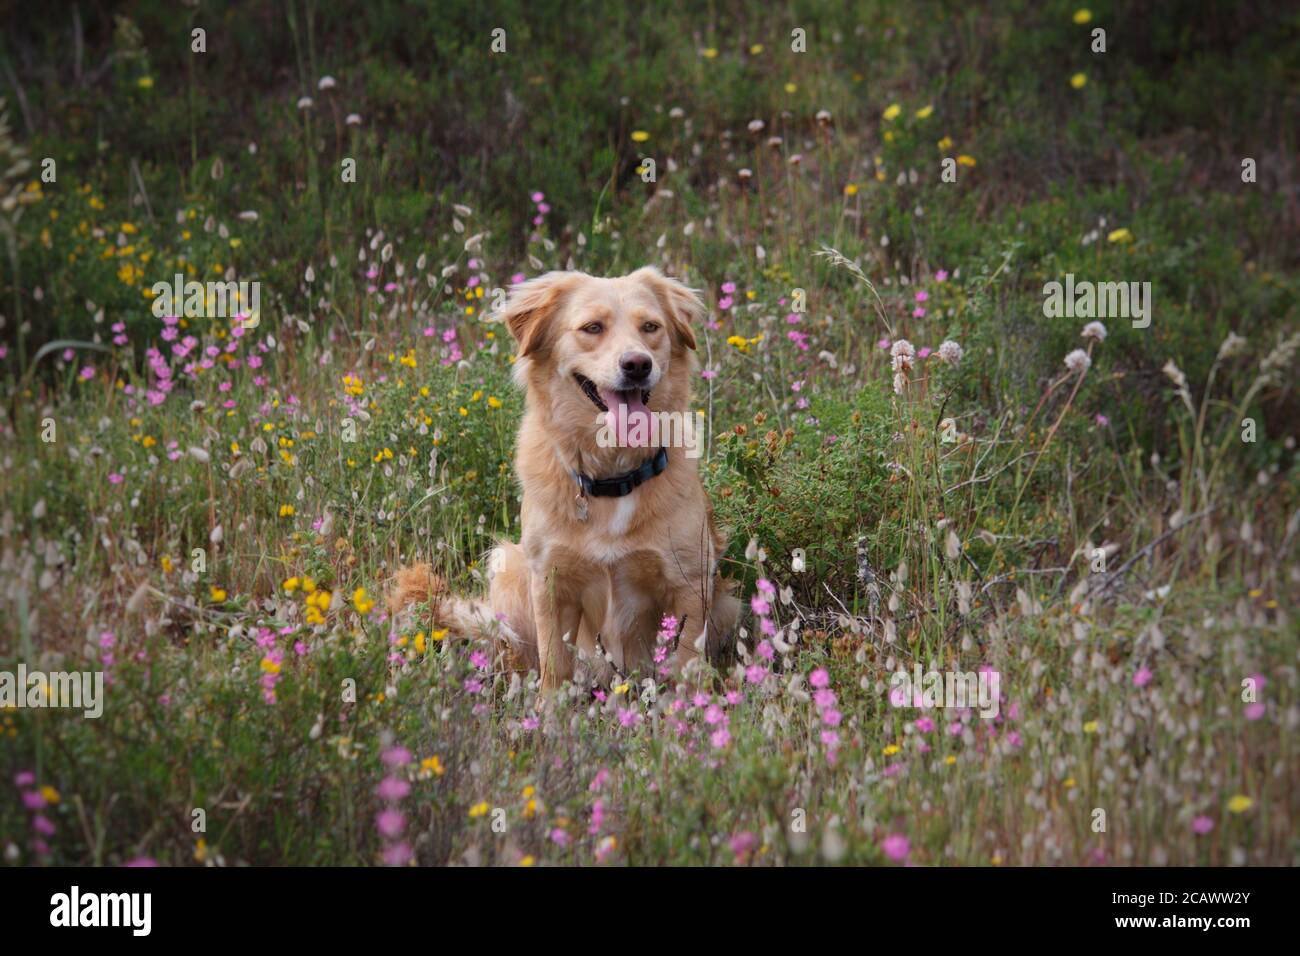 A dog in a flower patch Stock Photo